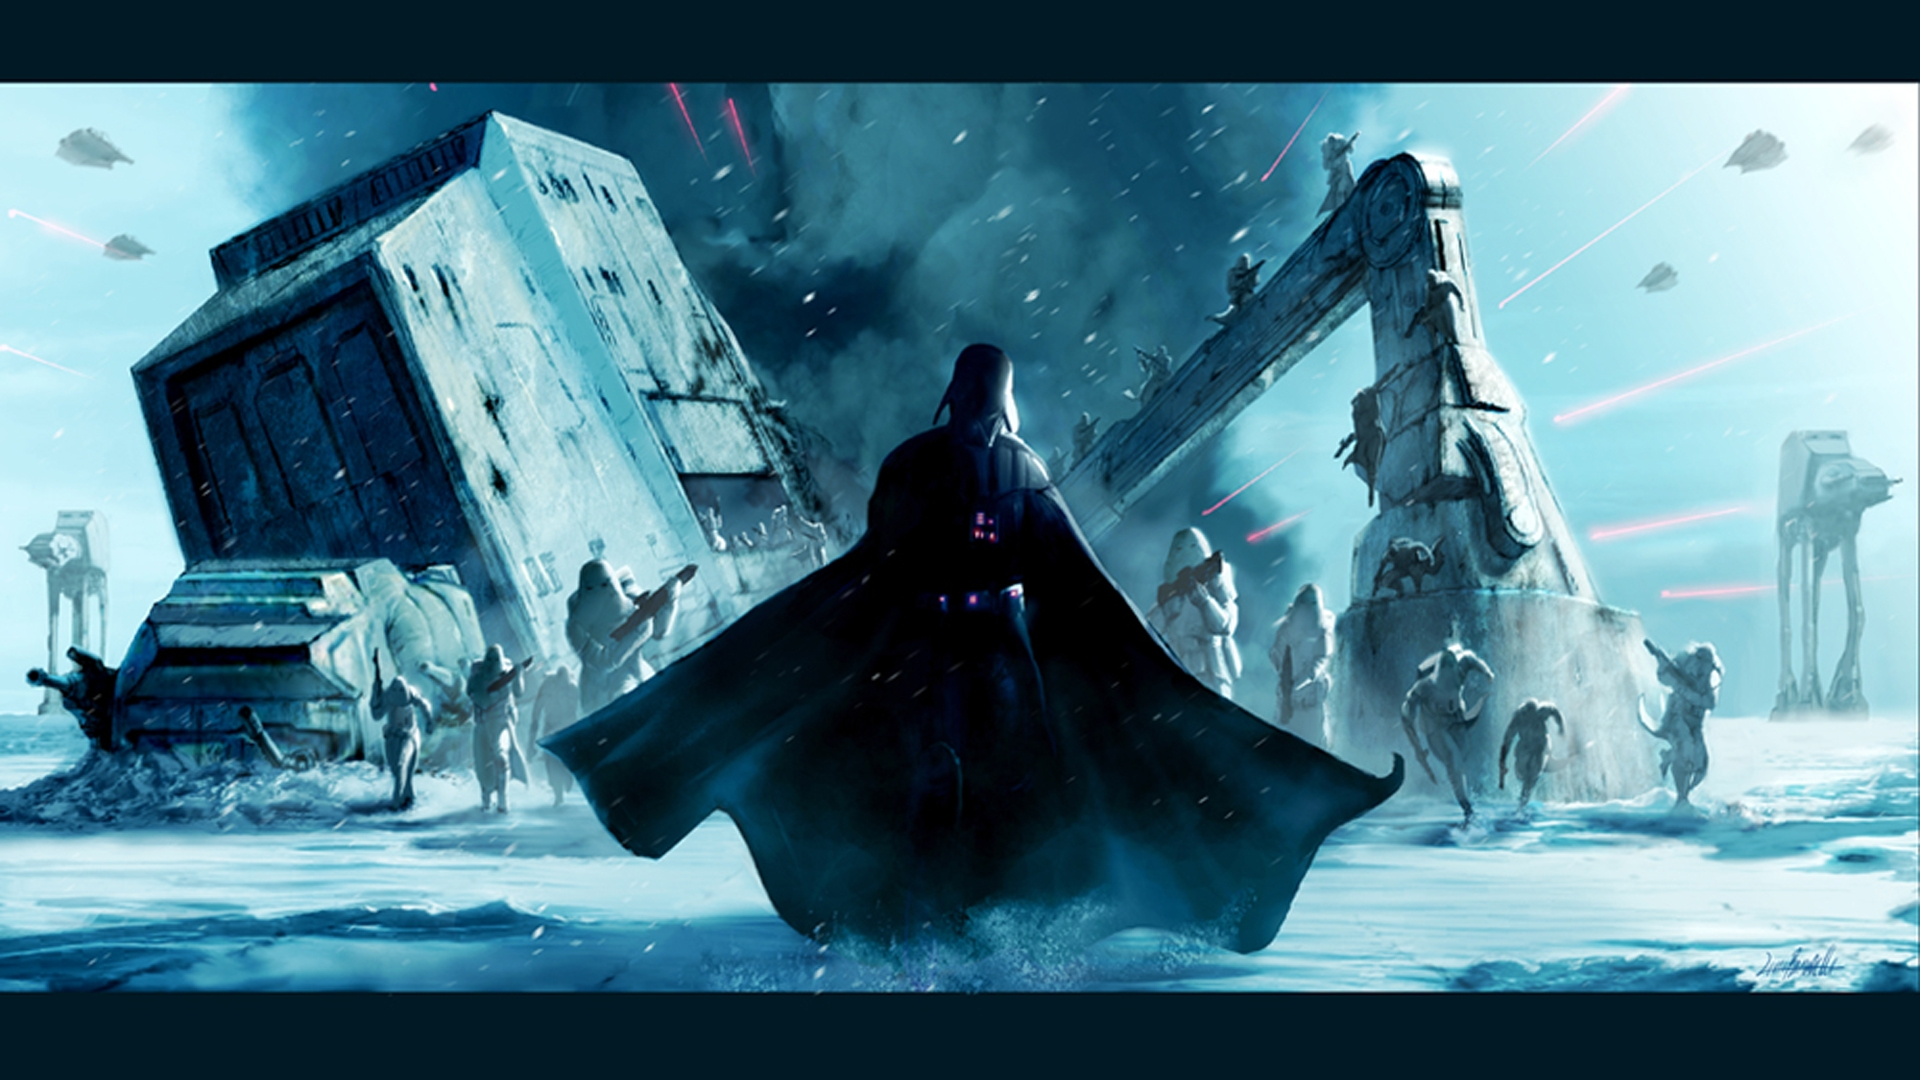 Star Wars Darth Vader Hoth HD Wallpaper 1920x1080